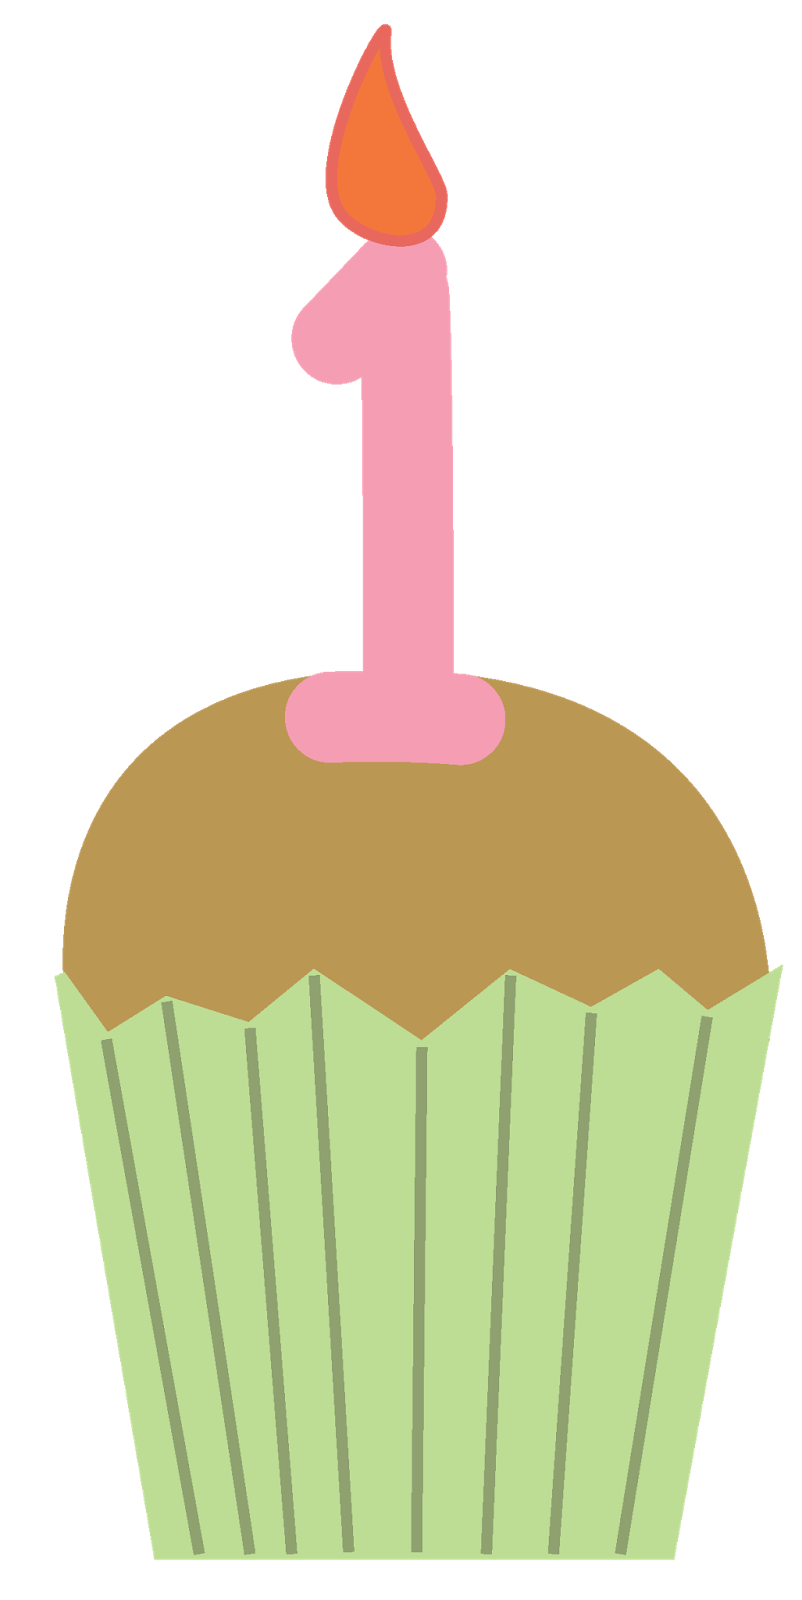 birthday cupcakes clipart.